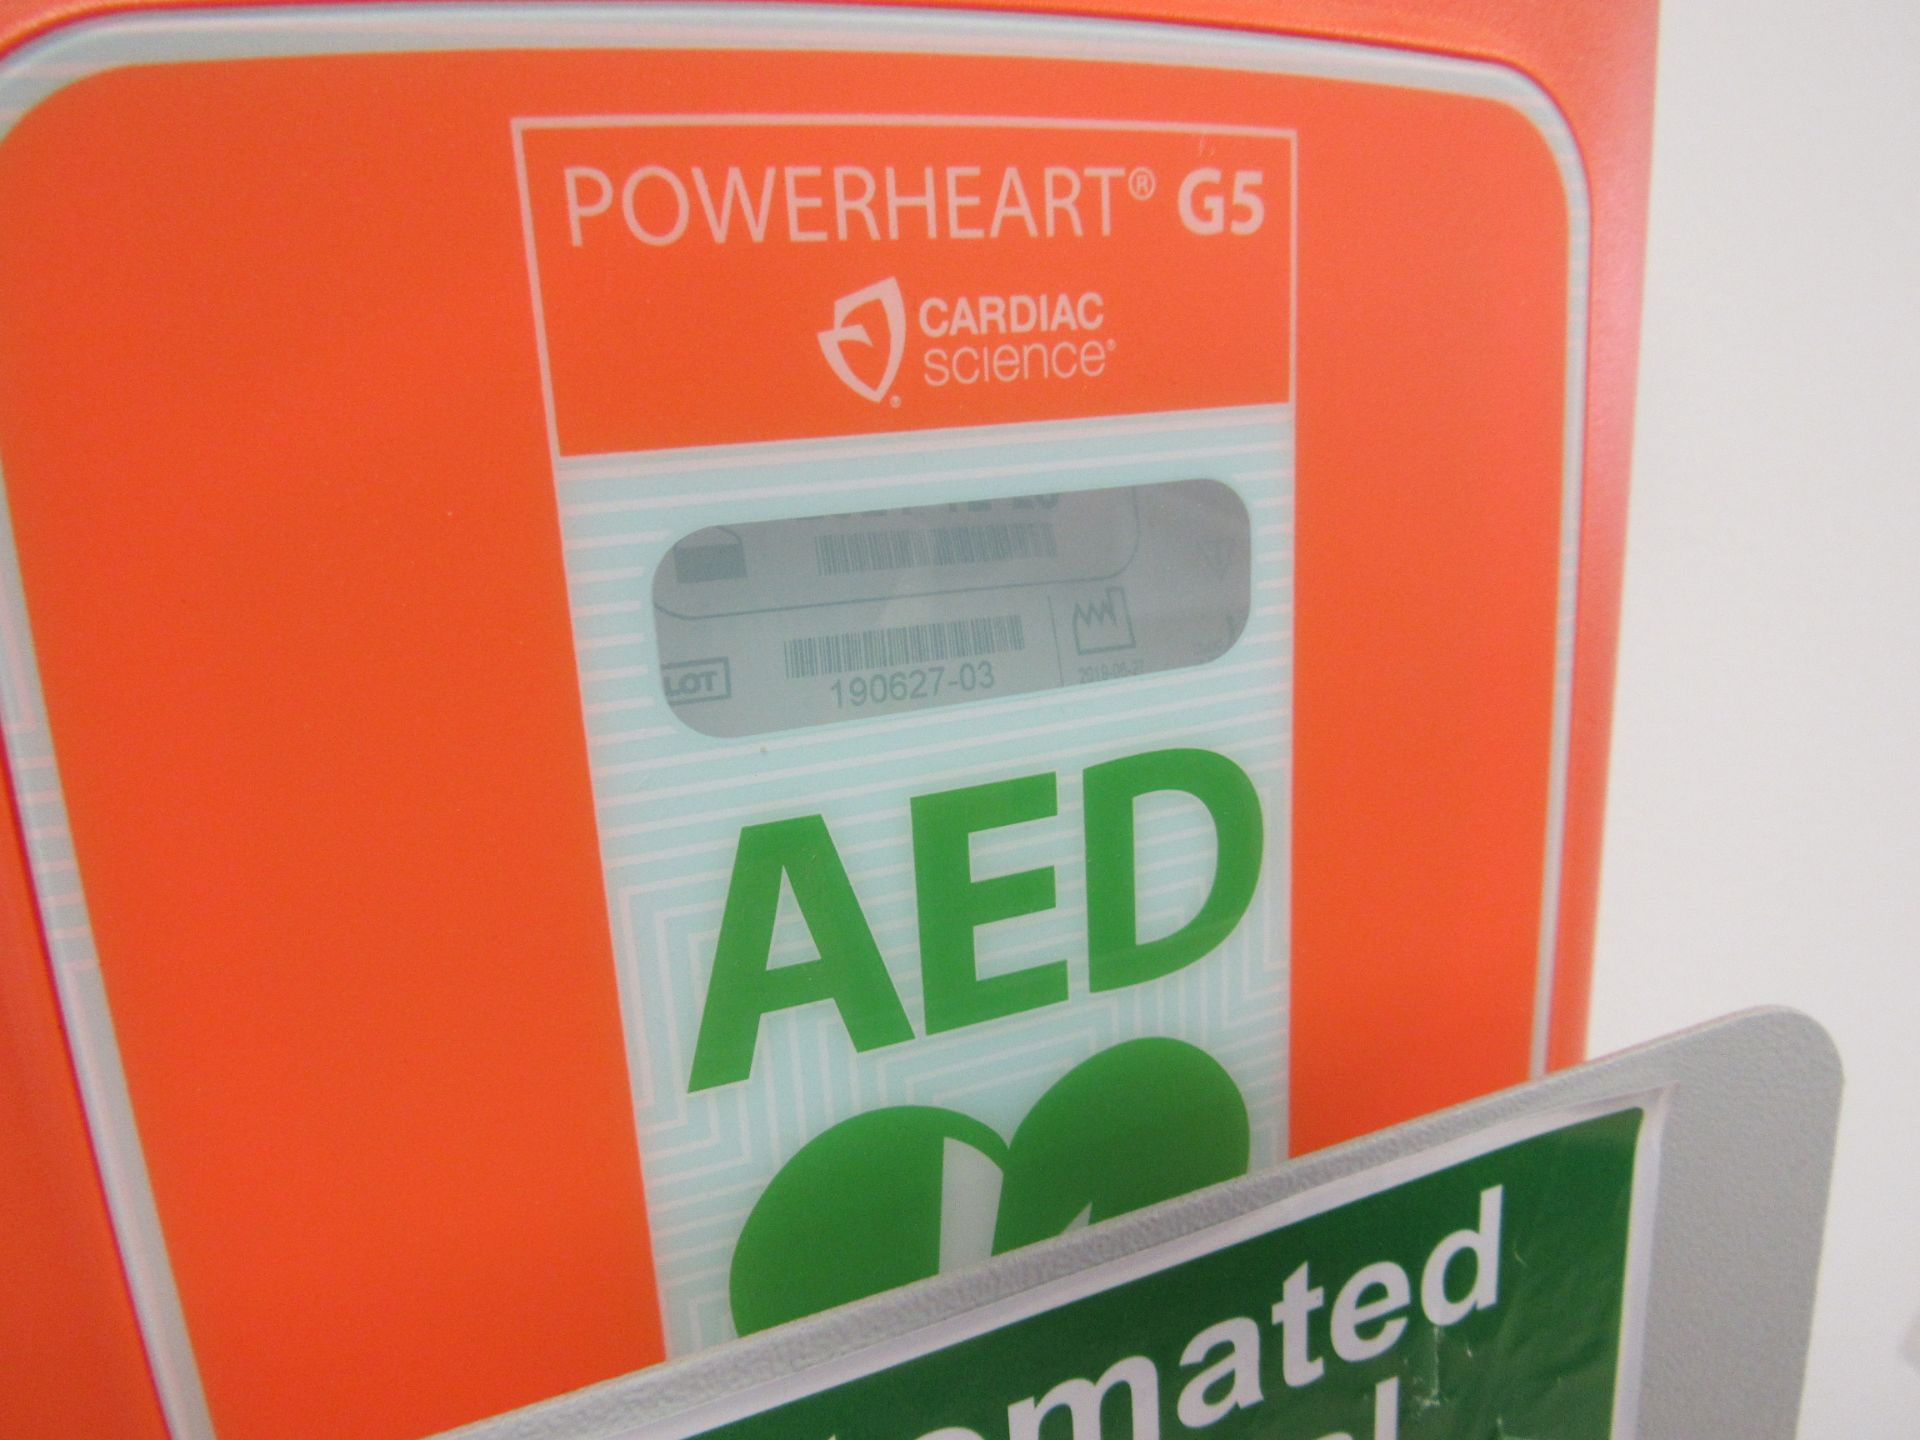 PowerHeart G5 automatic external defibrillator, Serial Number D00000042311 - Image 2 of 3